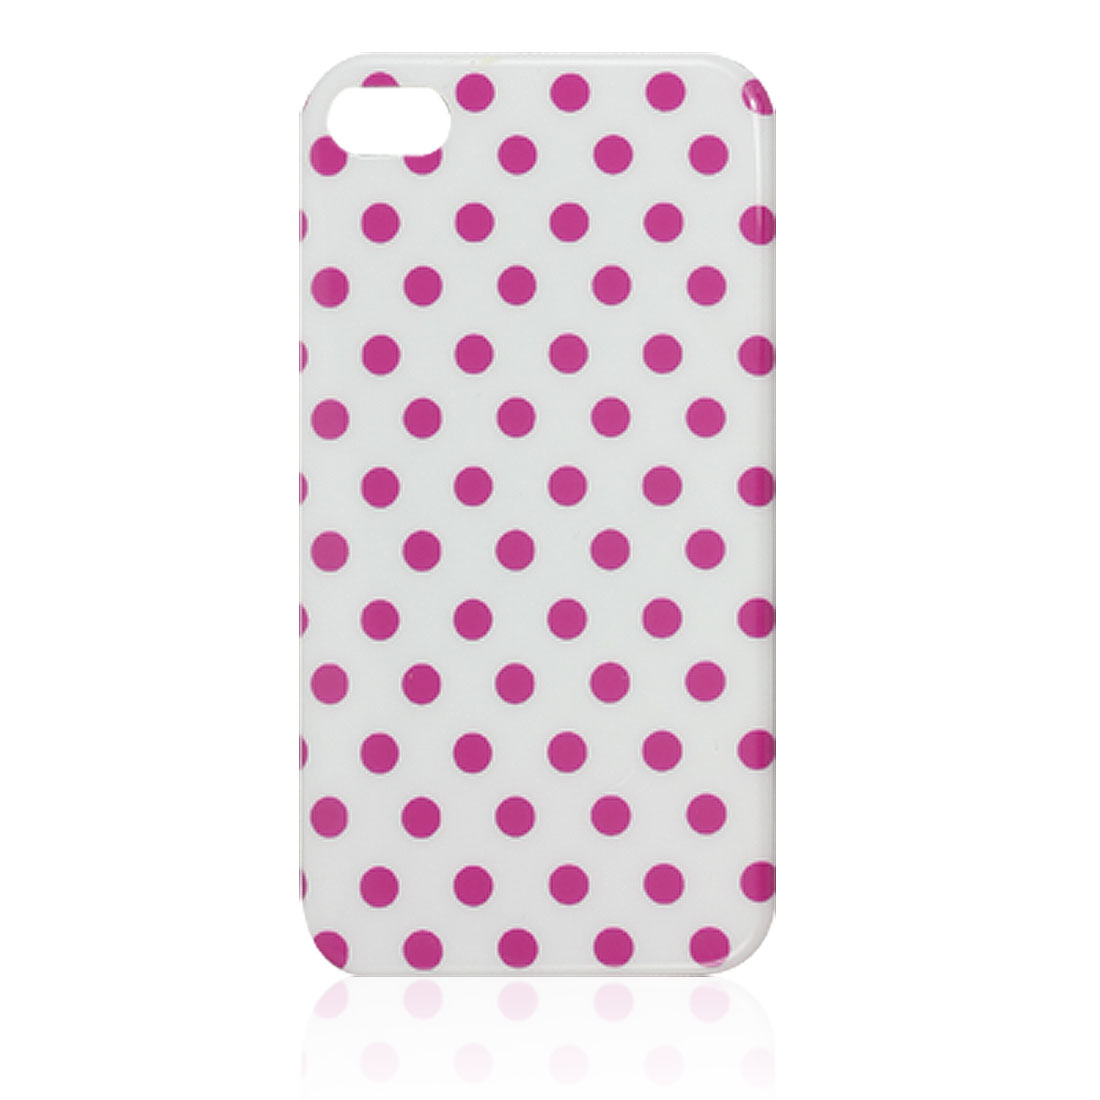 IMD Fuchsia Dots Decor White Plastic Back Cover Case for iPhone 4 4G 4S